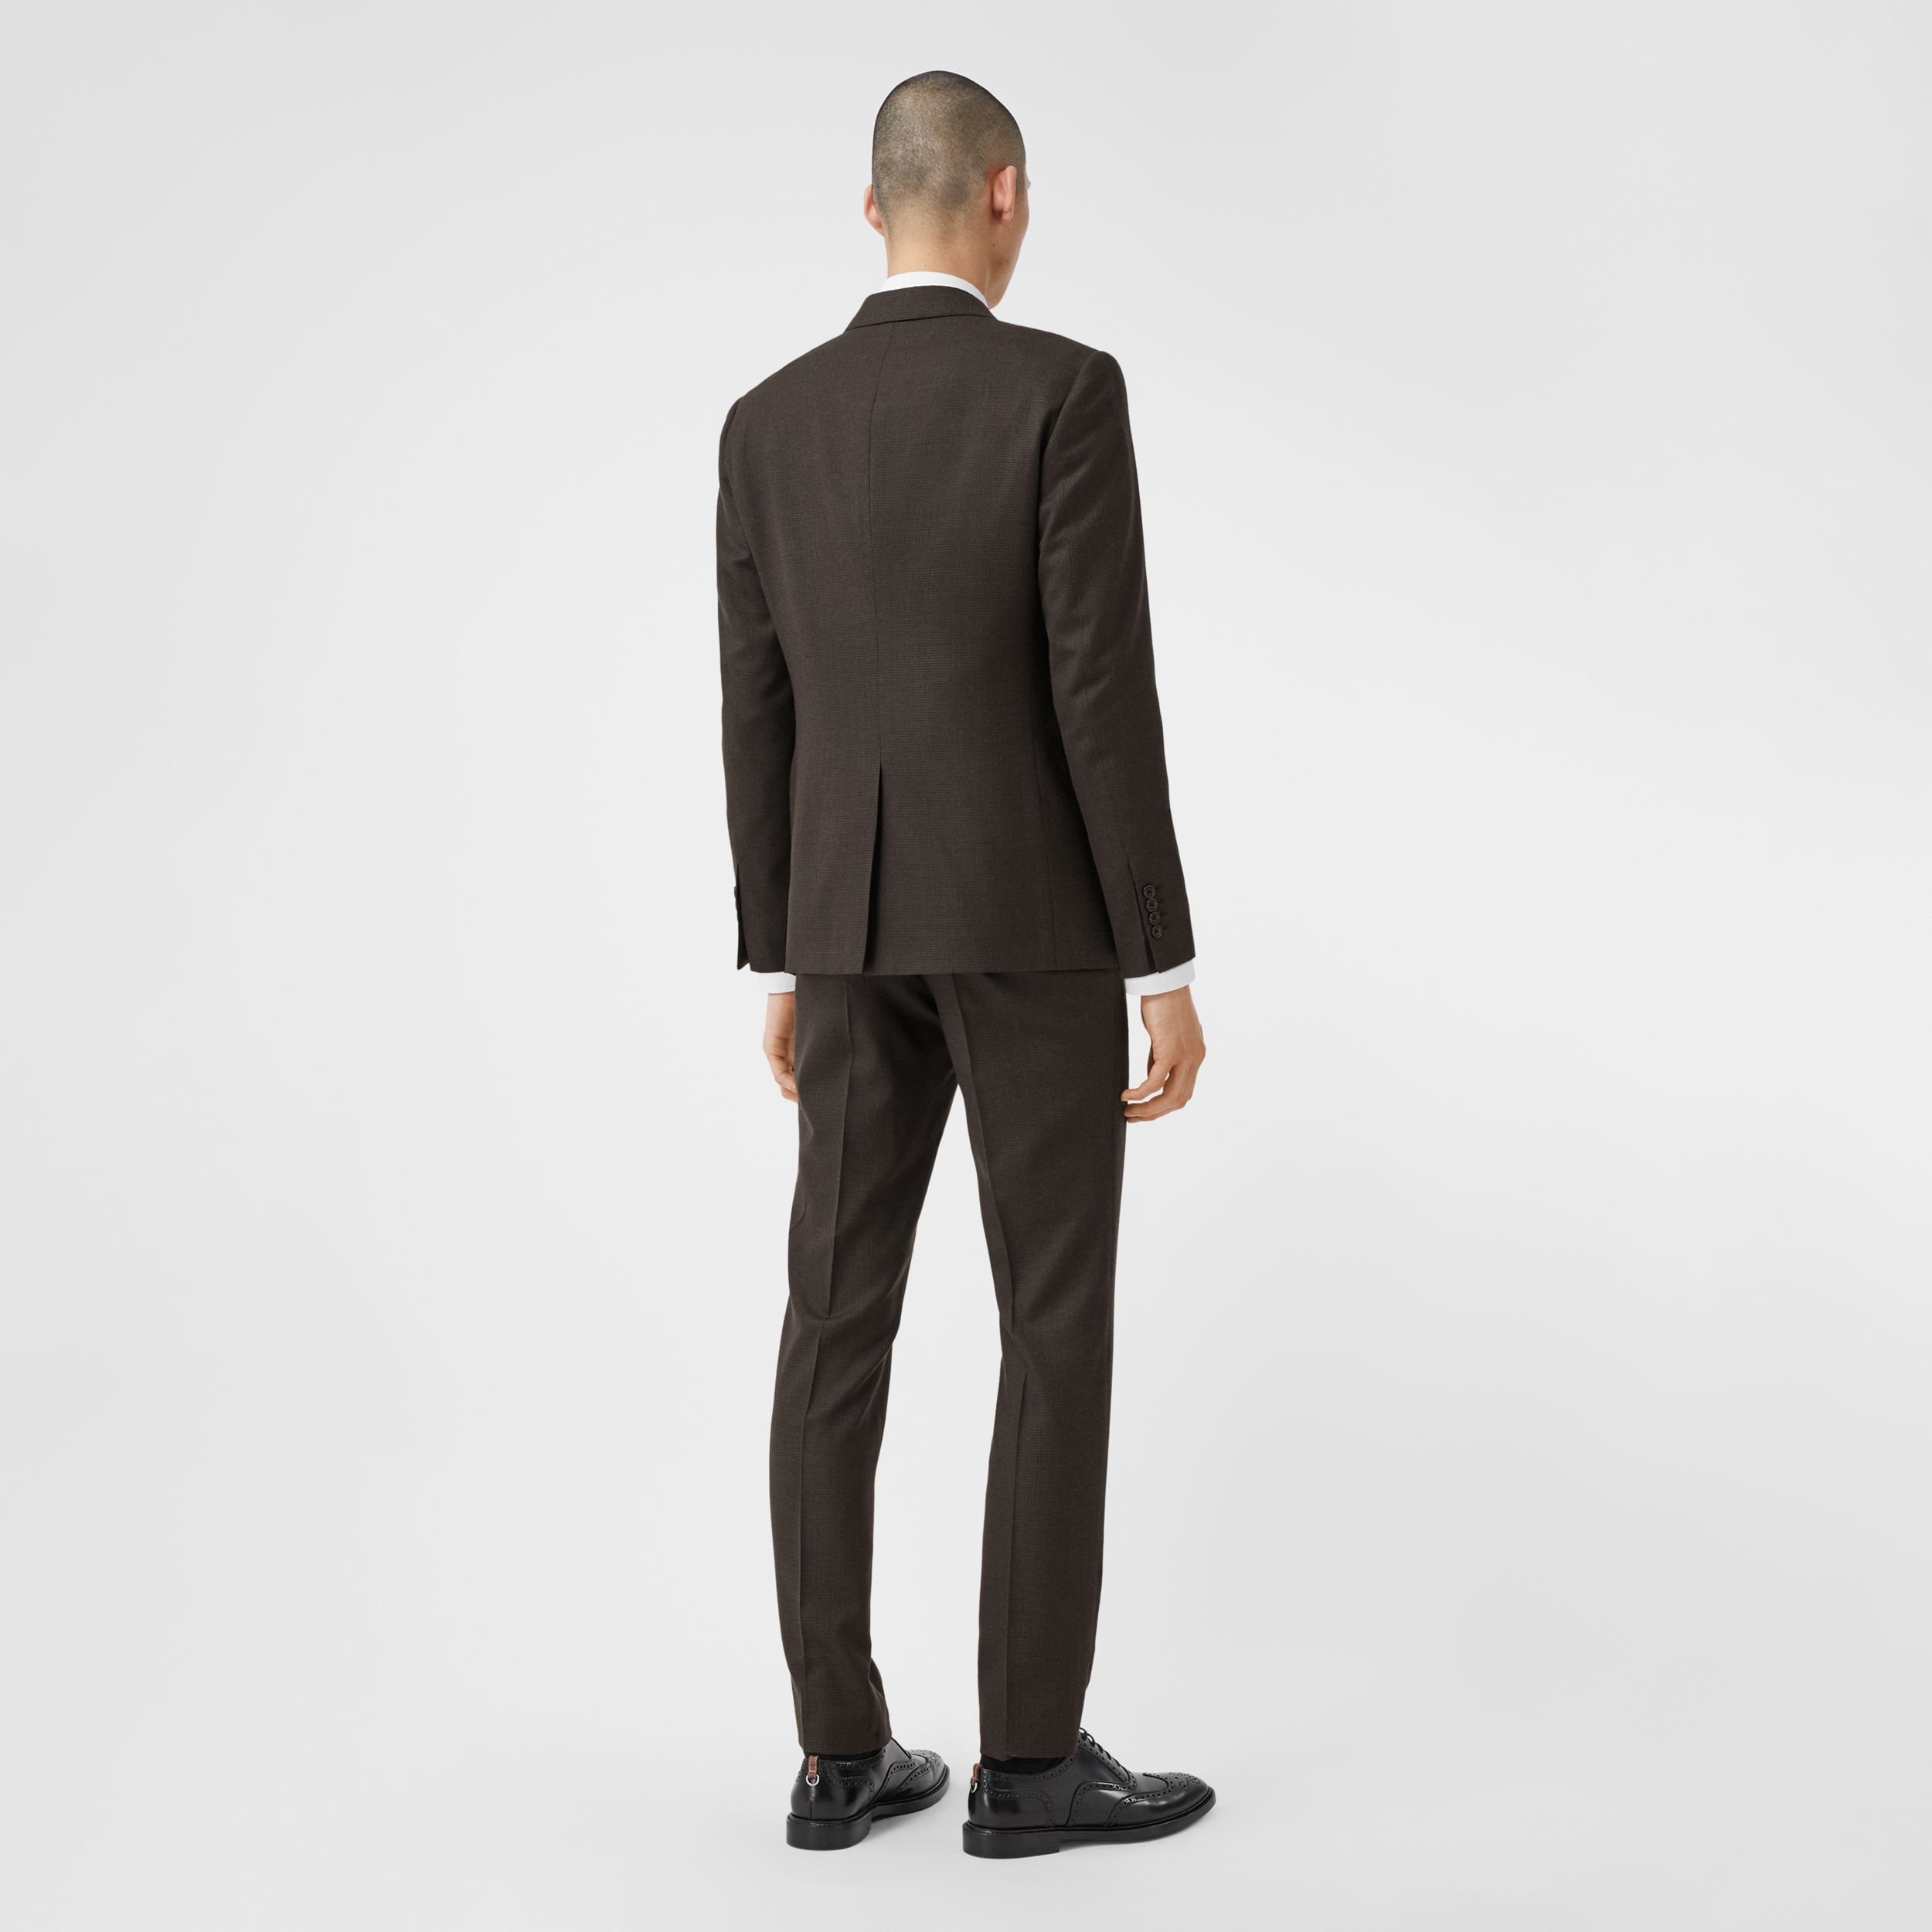 Slim Fit Puppytooth Check Wool Suit in Dark Brown - Men | Burberry - 3